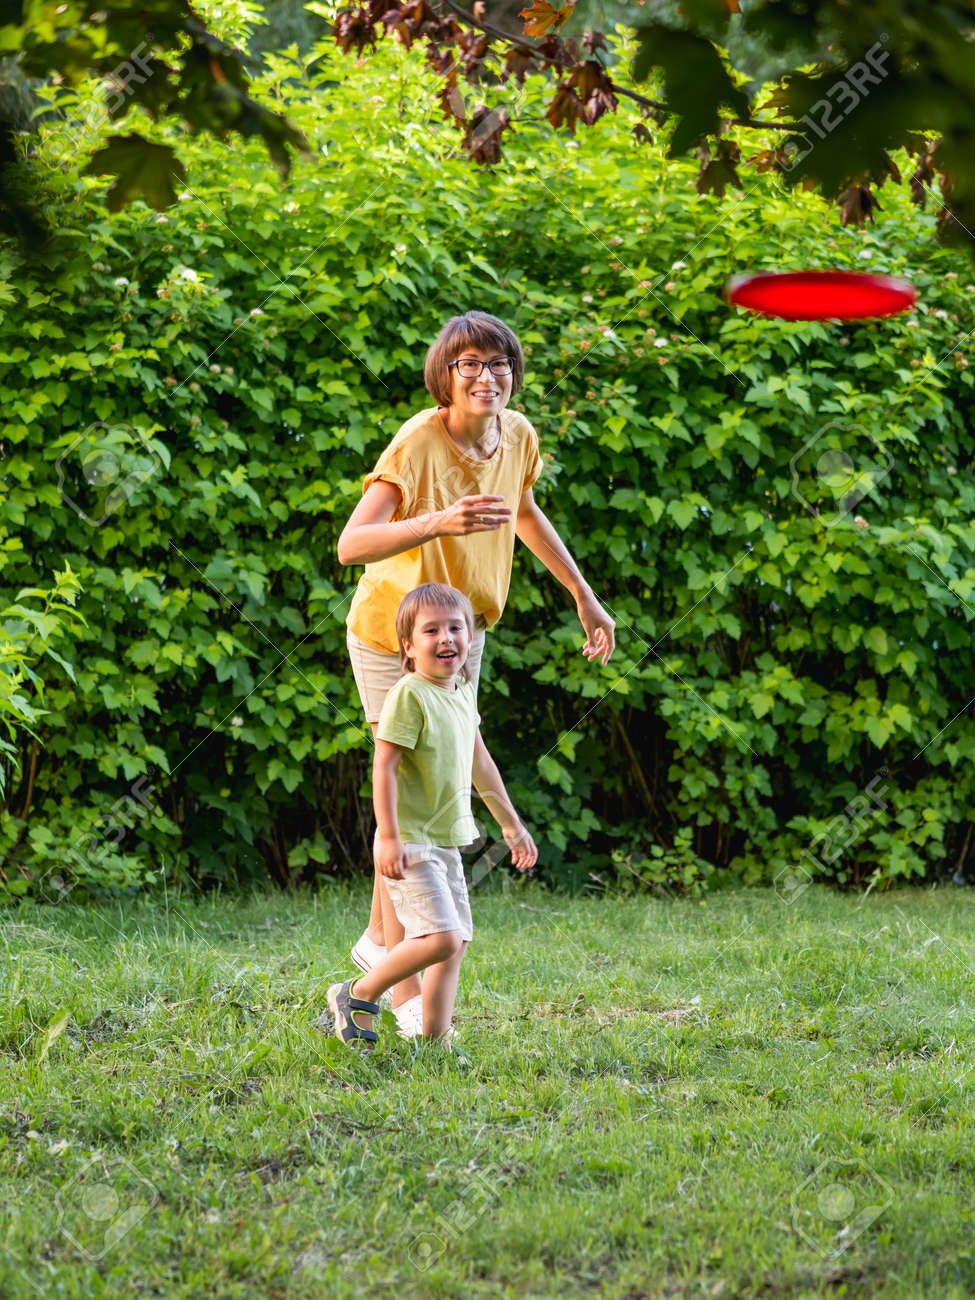 Mother and son play flying disk on grass lawn. Summer vibes. Outdoor leisure activity. Family life. Sports game at backyard. - 172806600